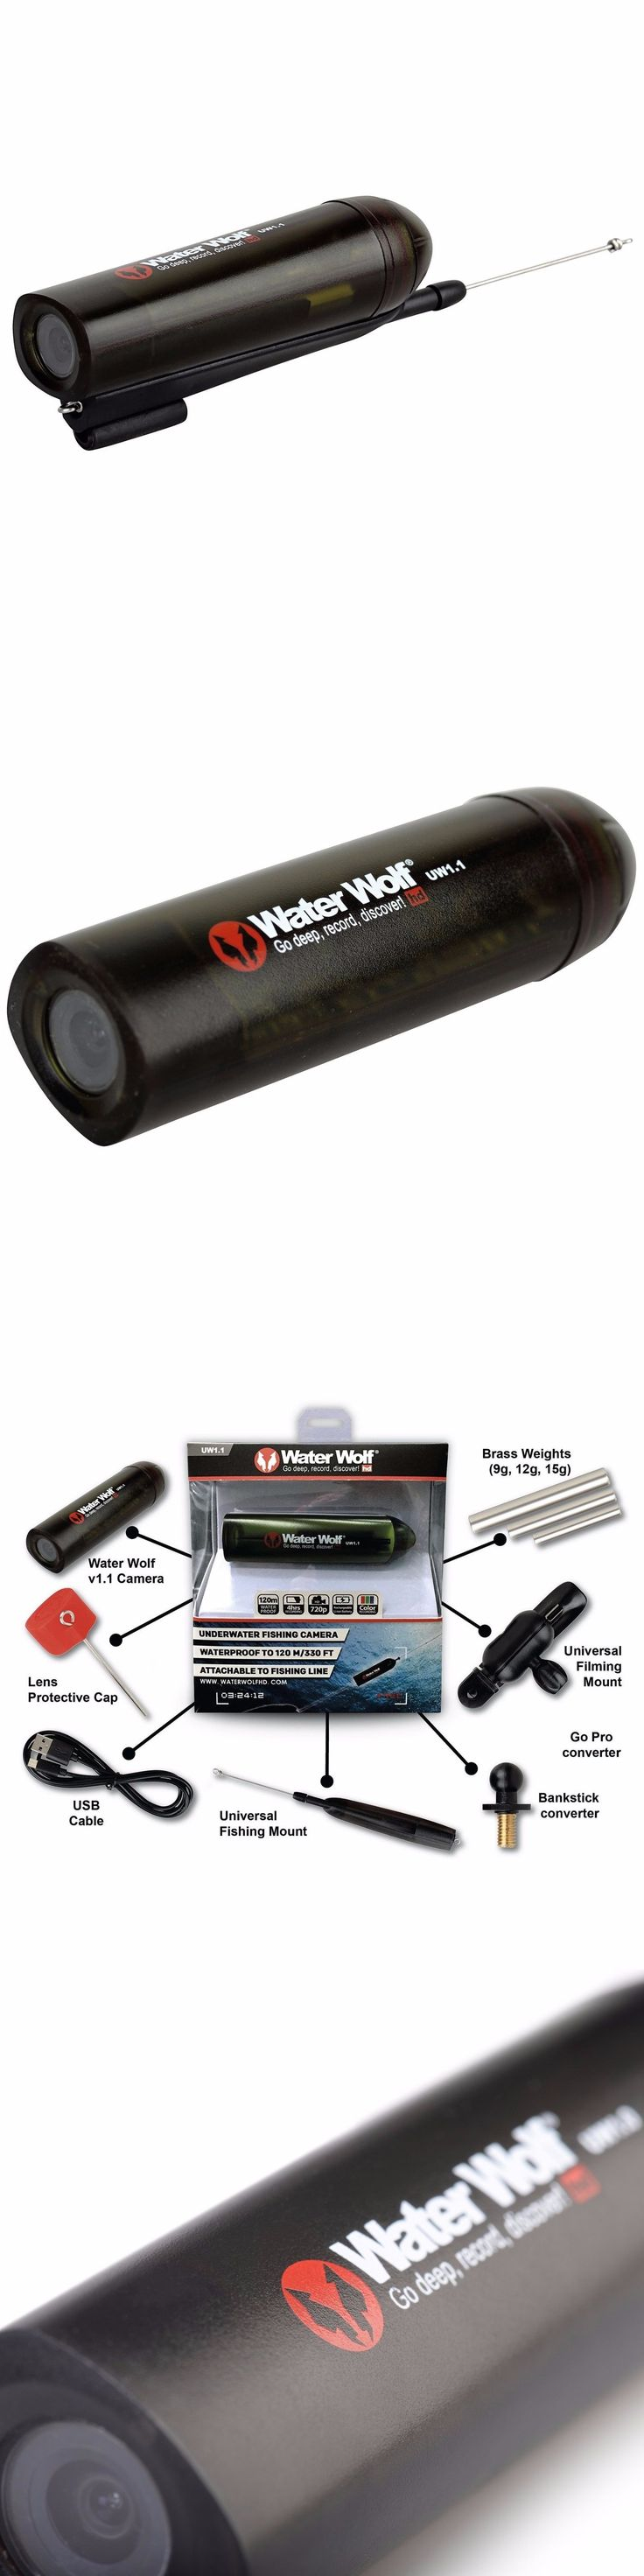 Underwater Cameras 180000: Bait And Tackle Saltwater Fishing Kit Water Wolf Best Underwater Camera Okuma Hd -> BUY IT NOW ONLY: $222.81 on eBay!